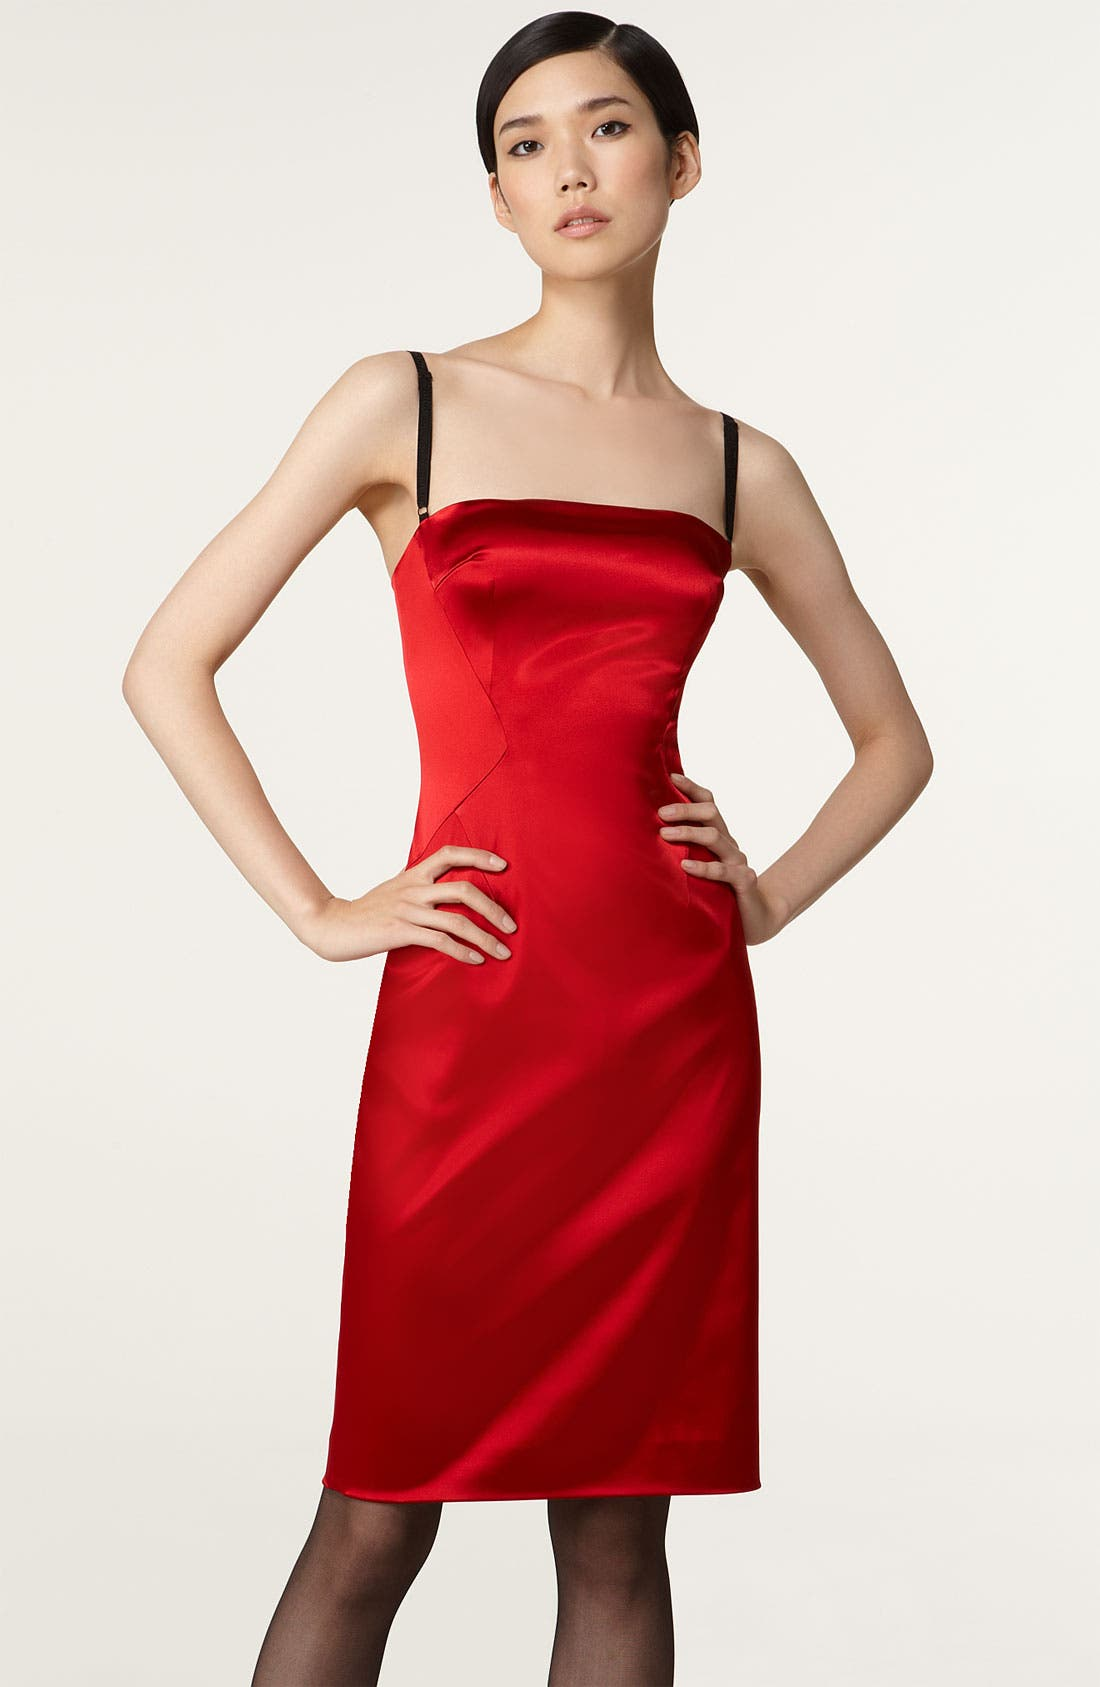 Alternate Image 1 Selected - D&G Stretch Satin Camisole Dress